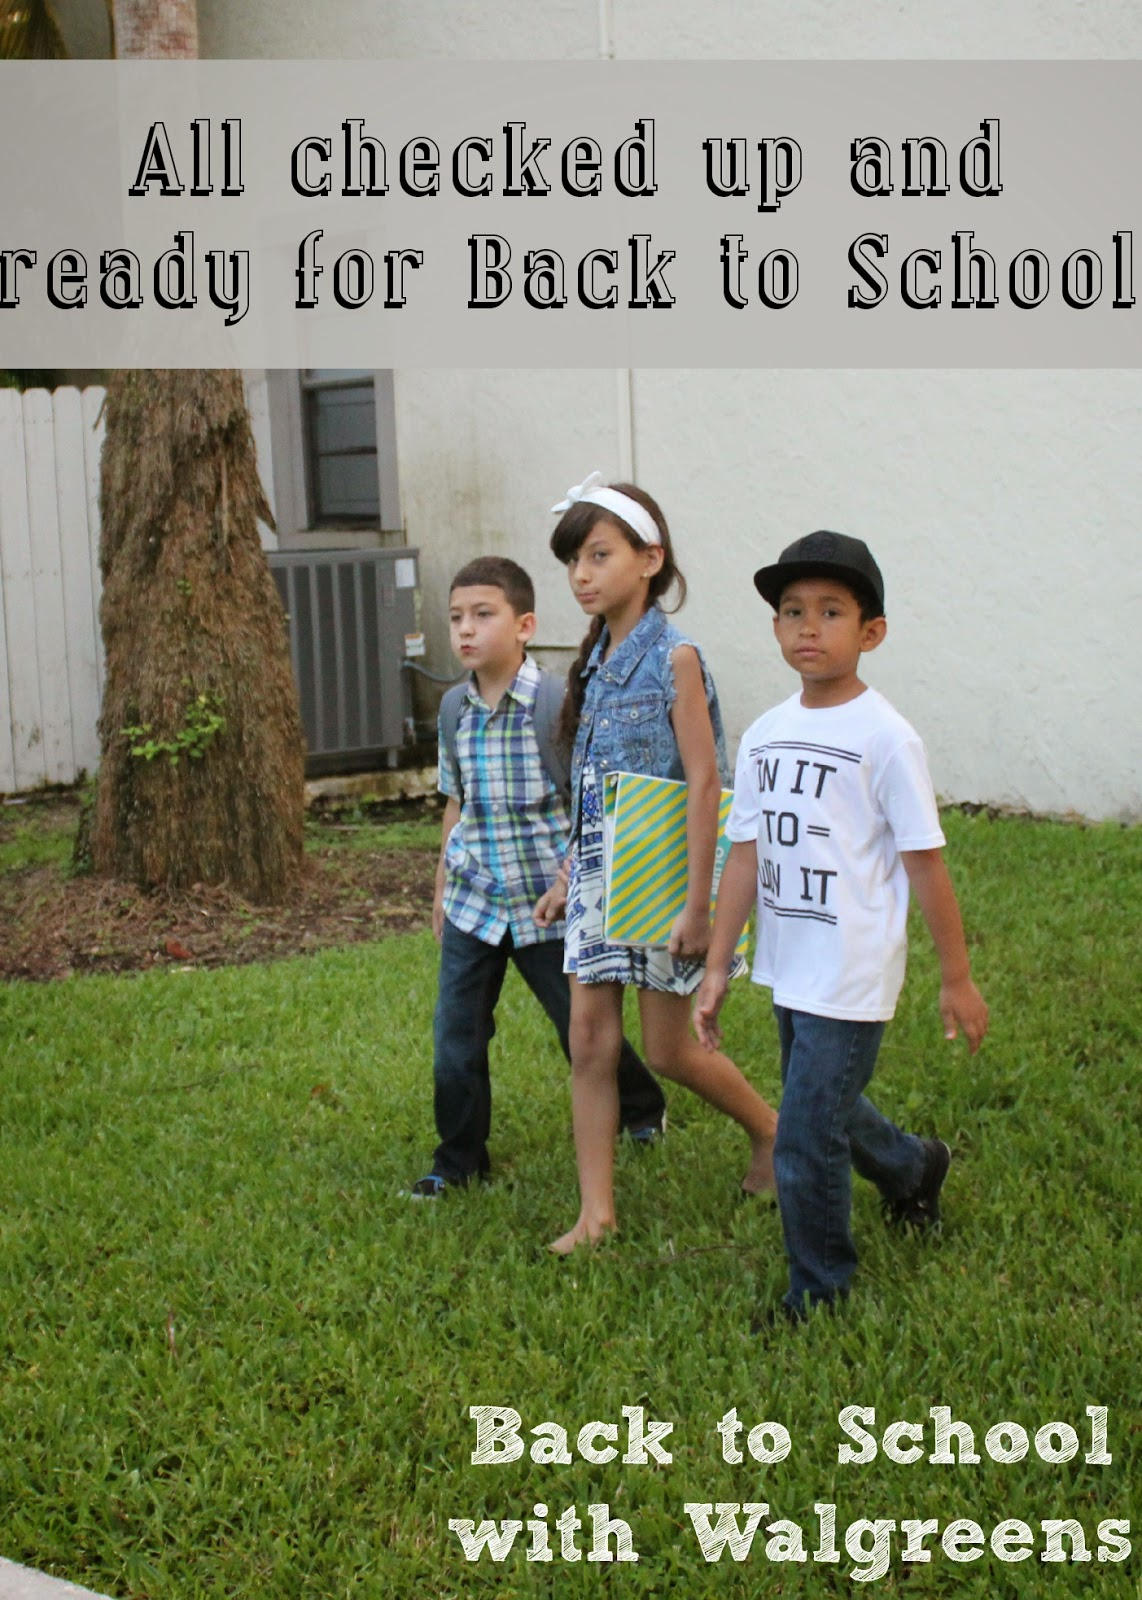 All checked up and ready for back to school! #WalgreensLatino #shop